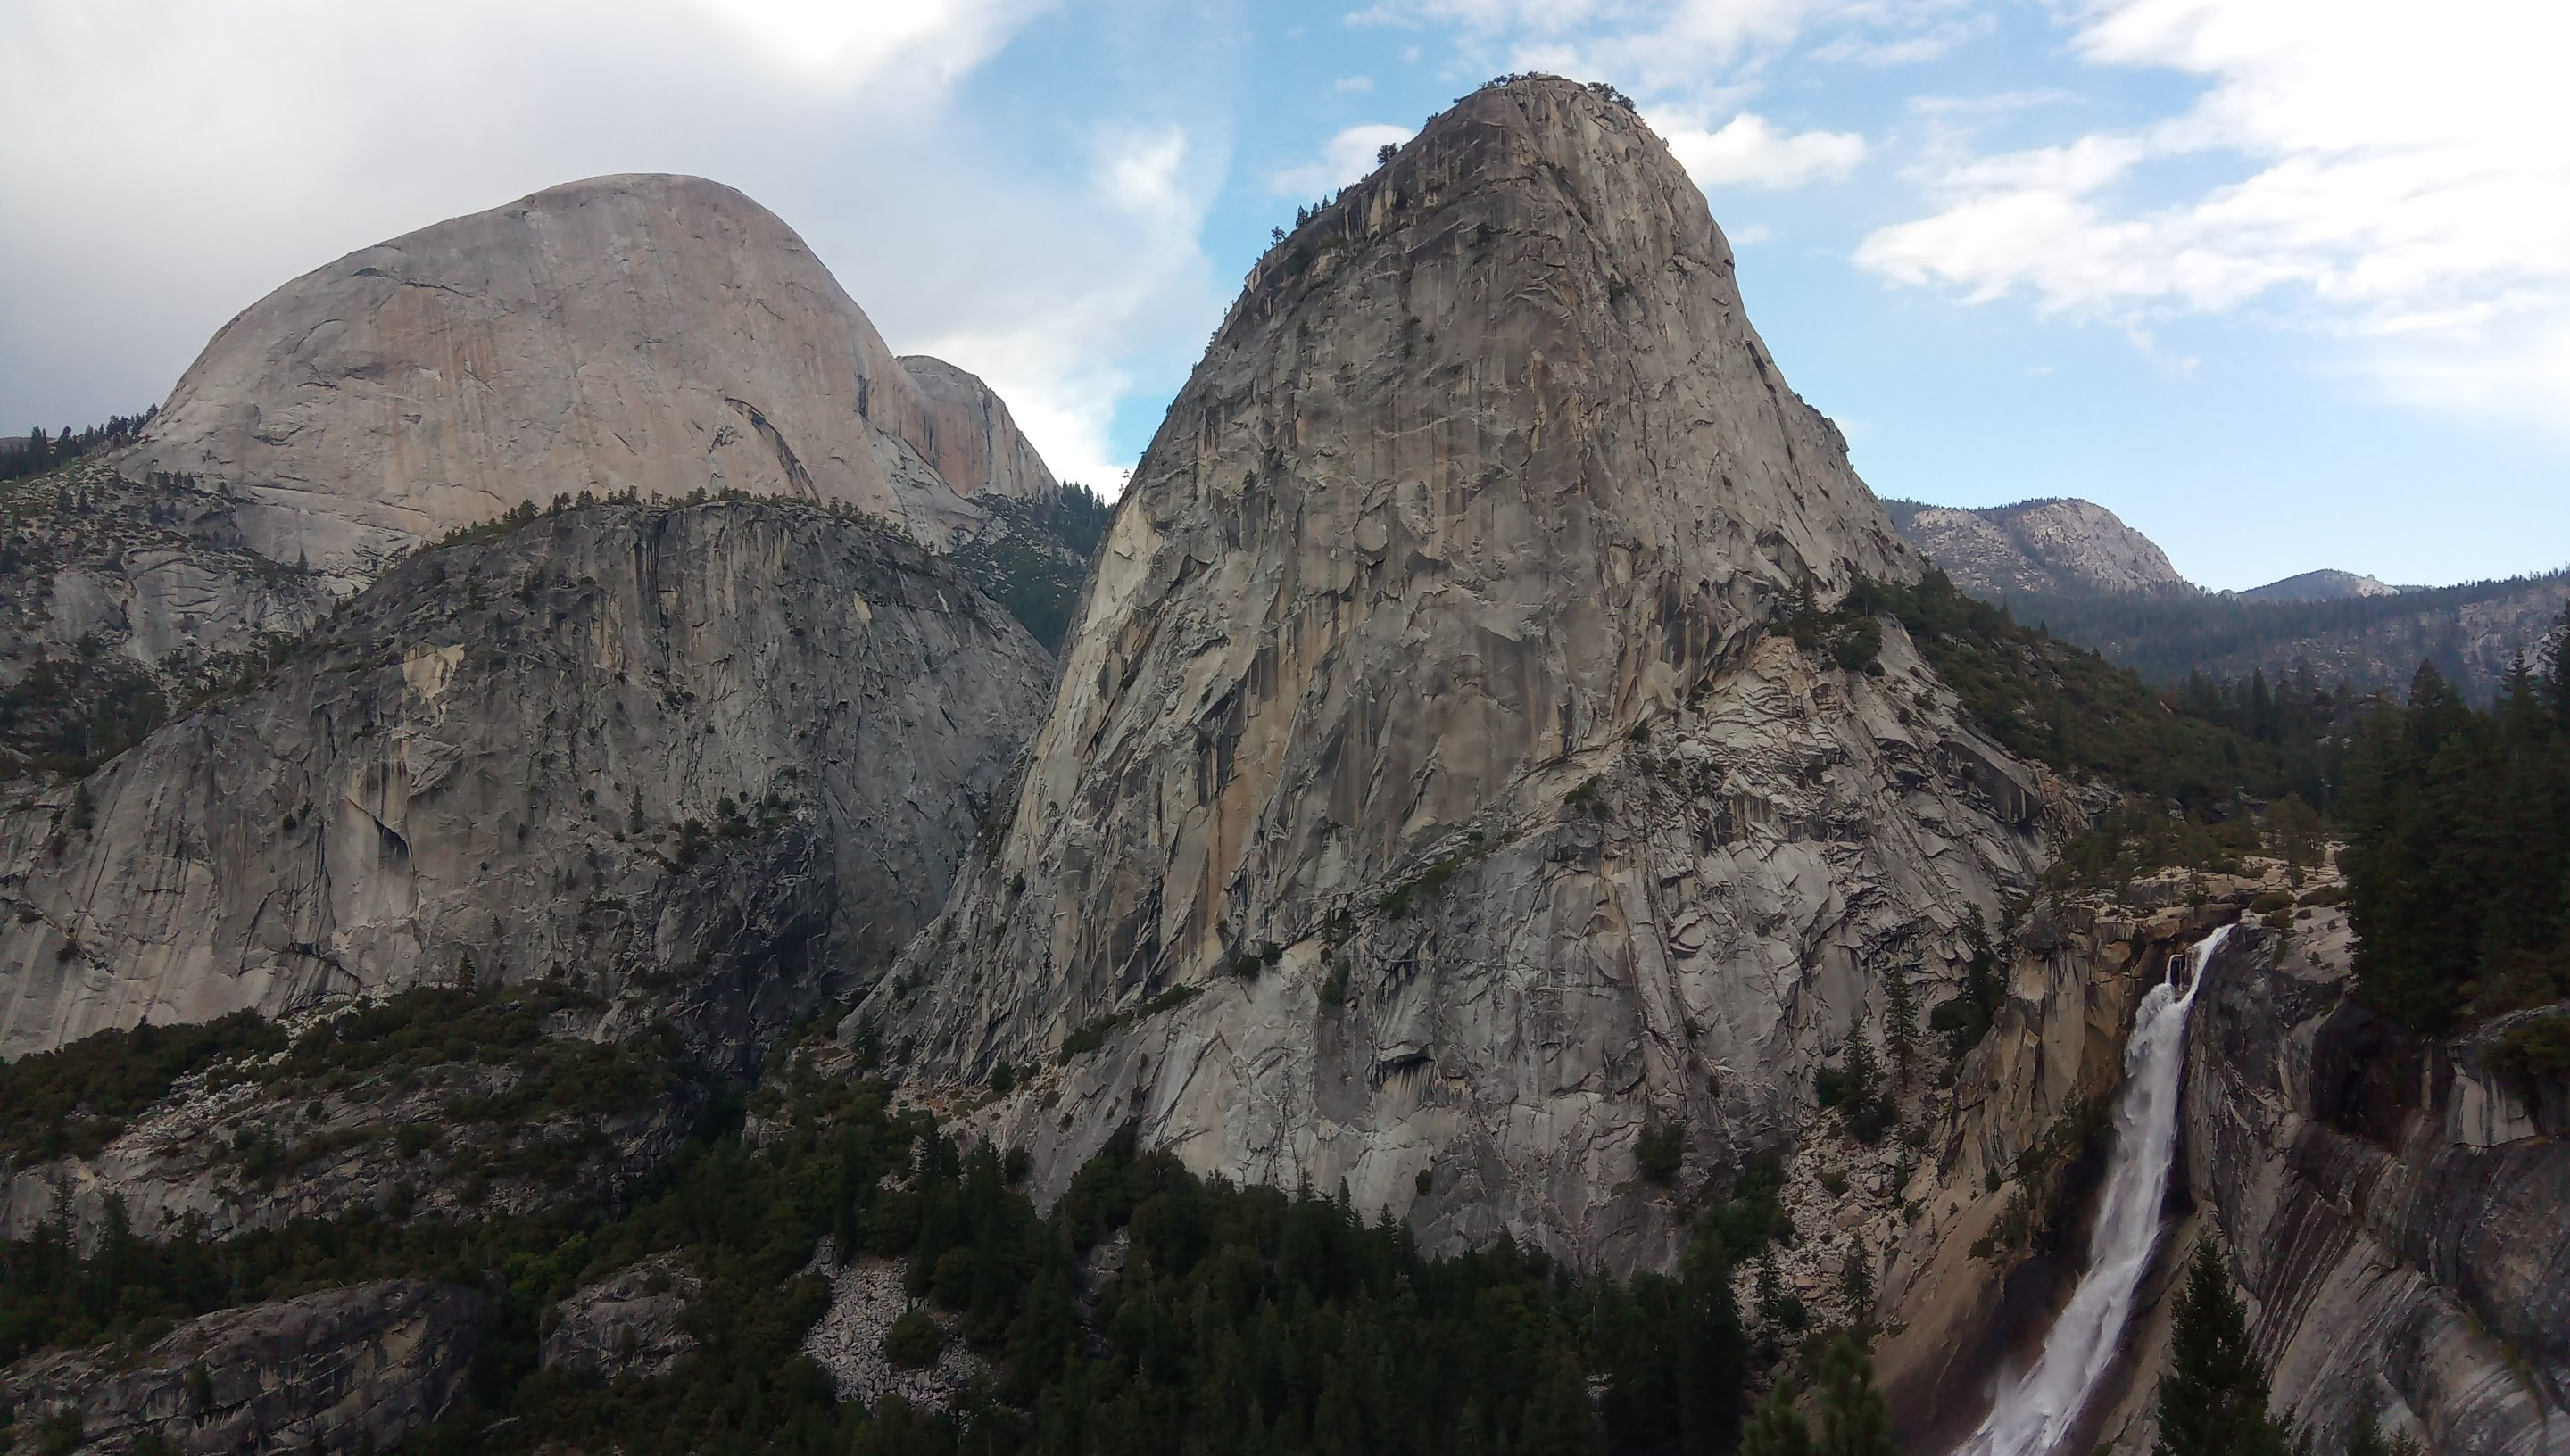 Half Dome, Mt. Broderick, Liberty Cap and Nevada fall